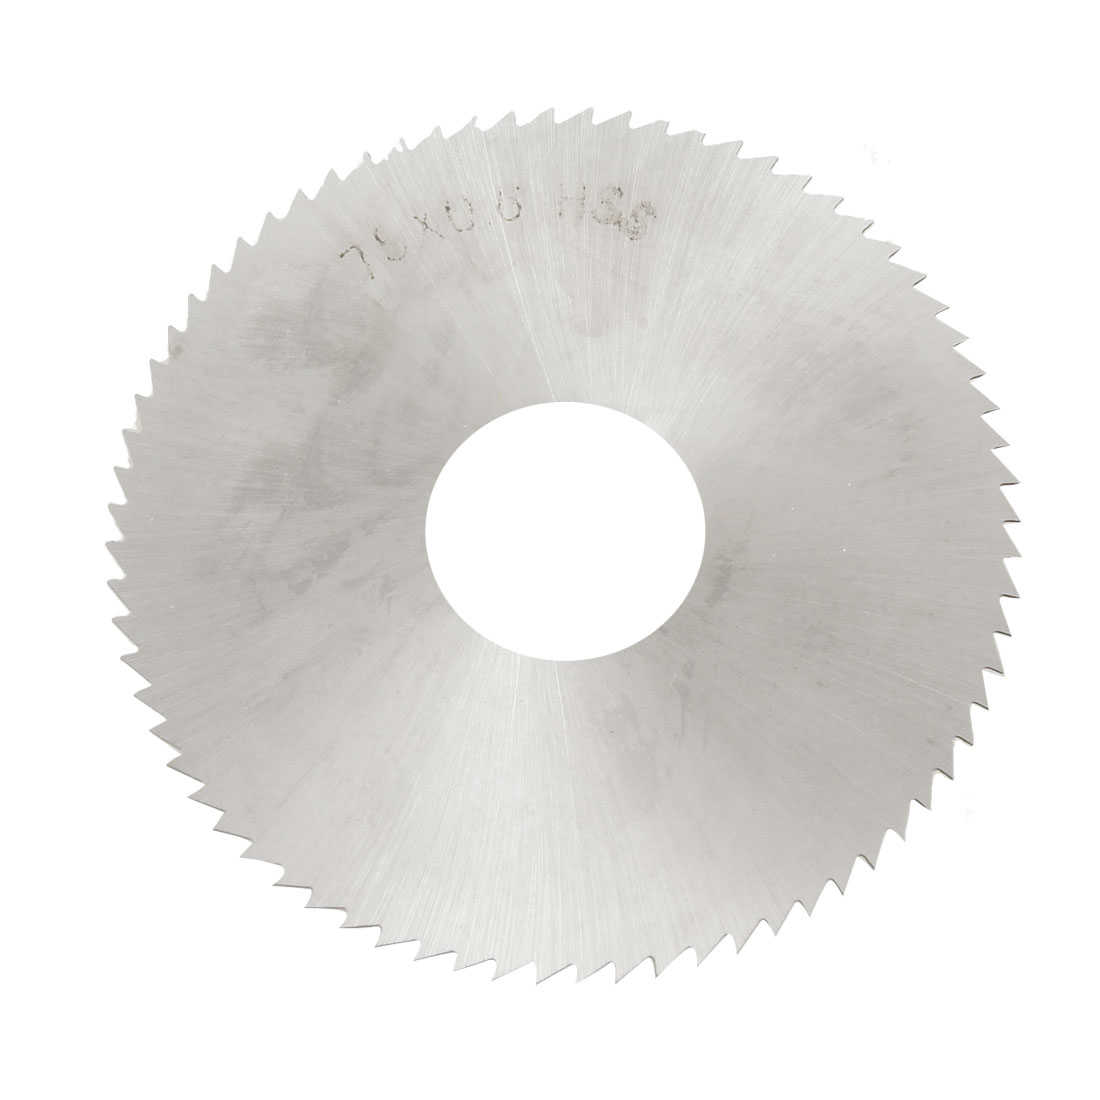 Unique Bargains 72 Teeth HSS 75mm x 22mm x 0.6mm Circular Slitting Saw Cutter